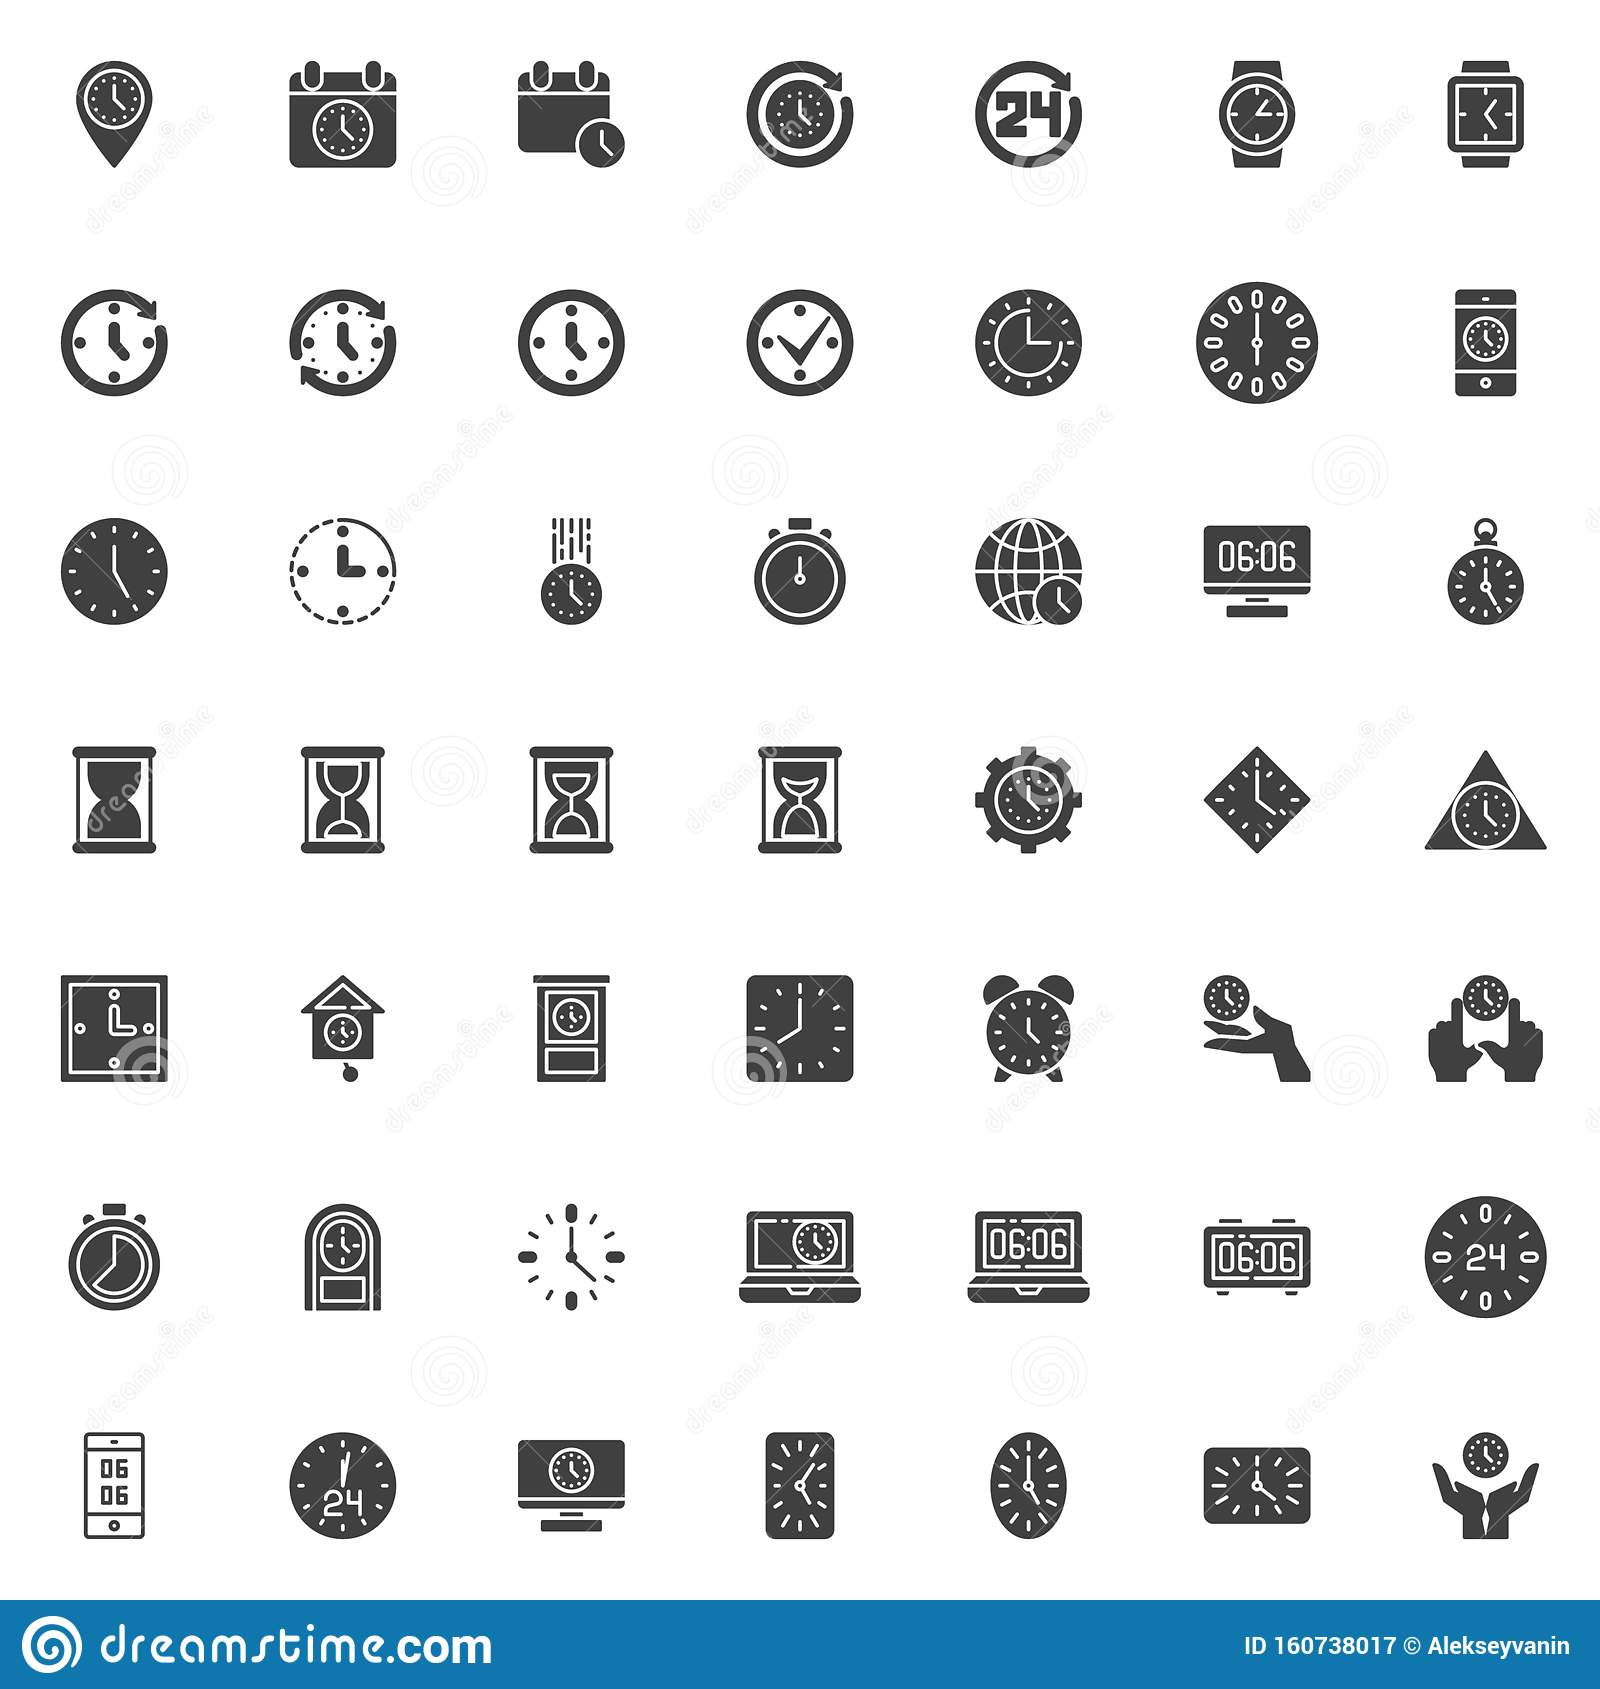 Clock time vector icons set